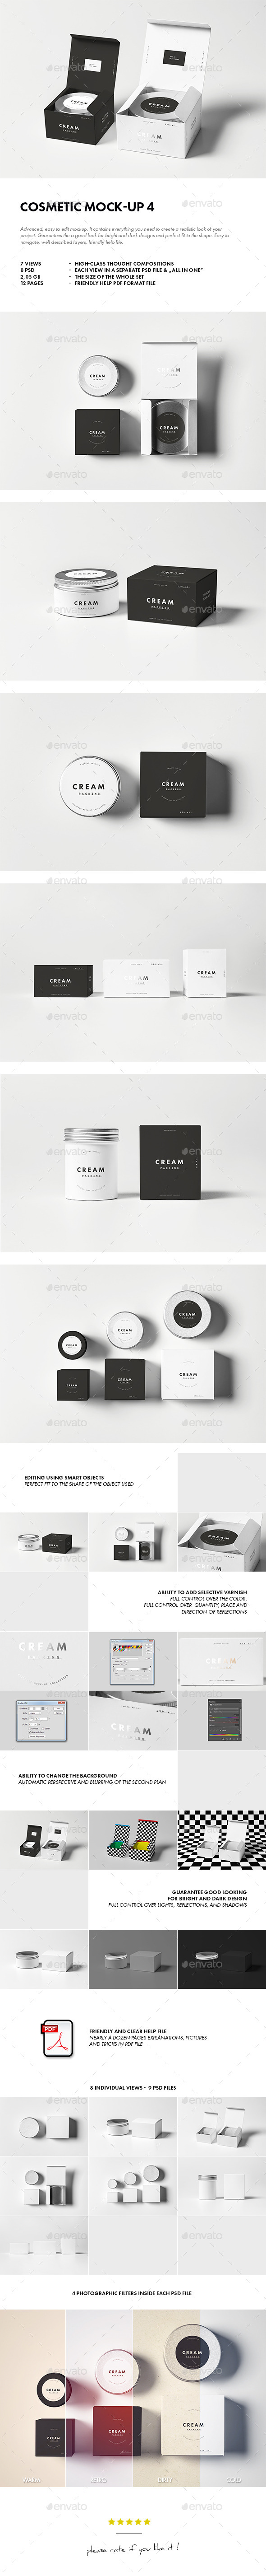 Cosmetic Mock-up 4 - Beauty Packaging